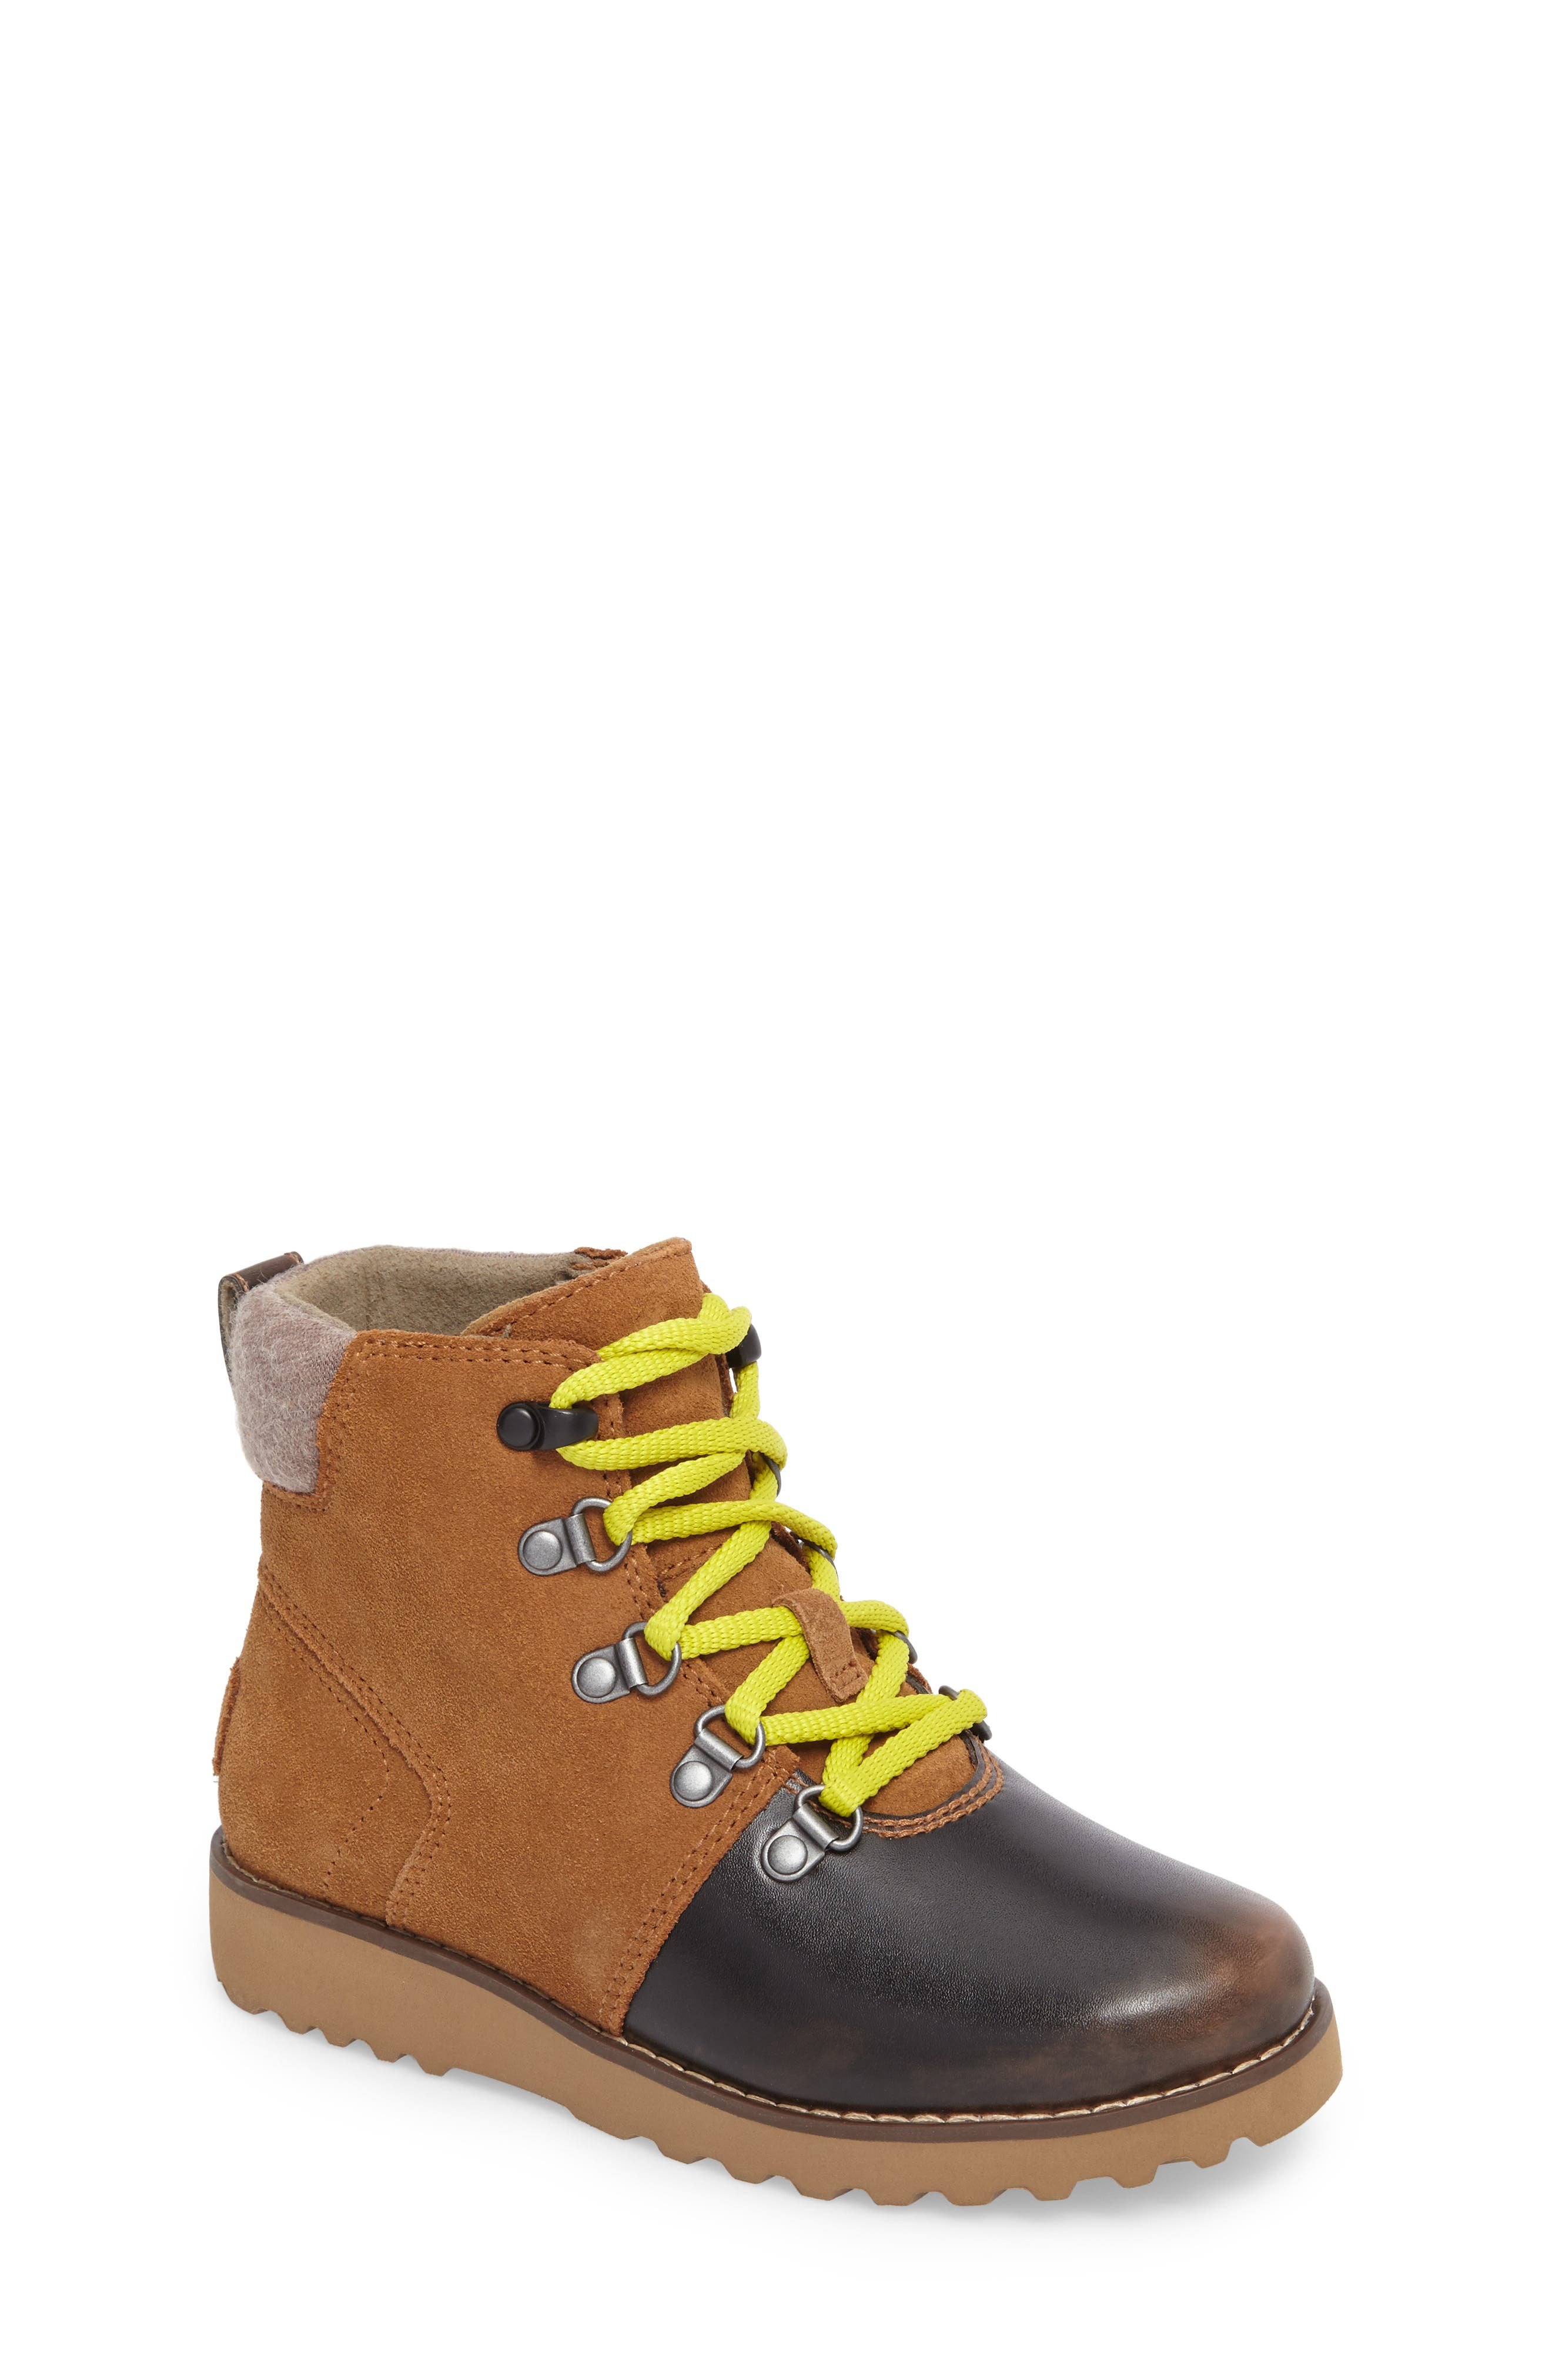 Hilmar Waterproof Winter Hiking Boot,                         Main,                         color, Grizzly